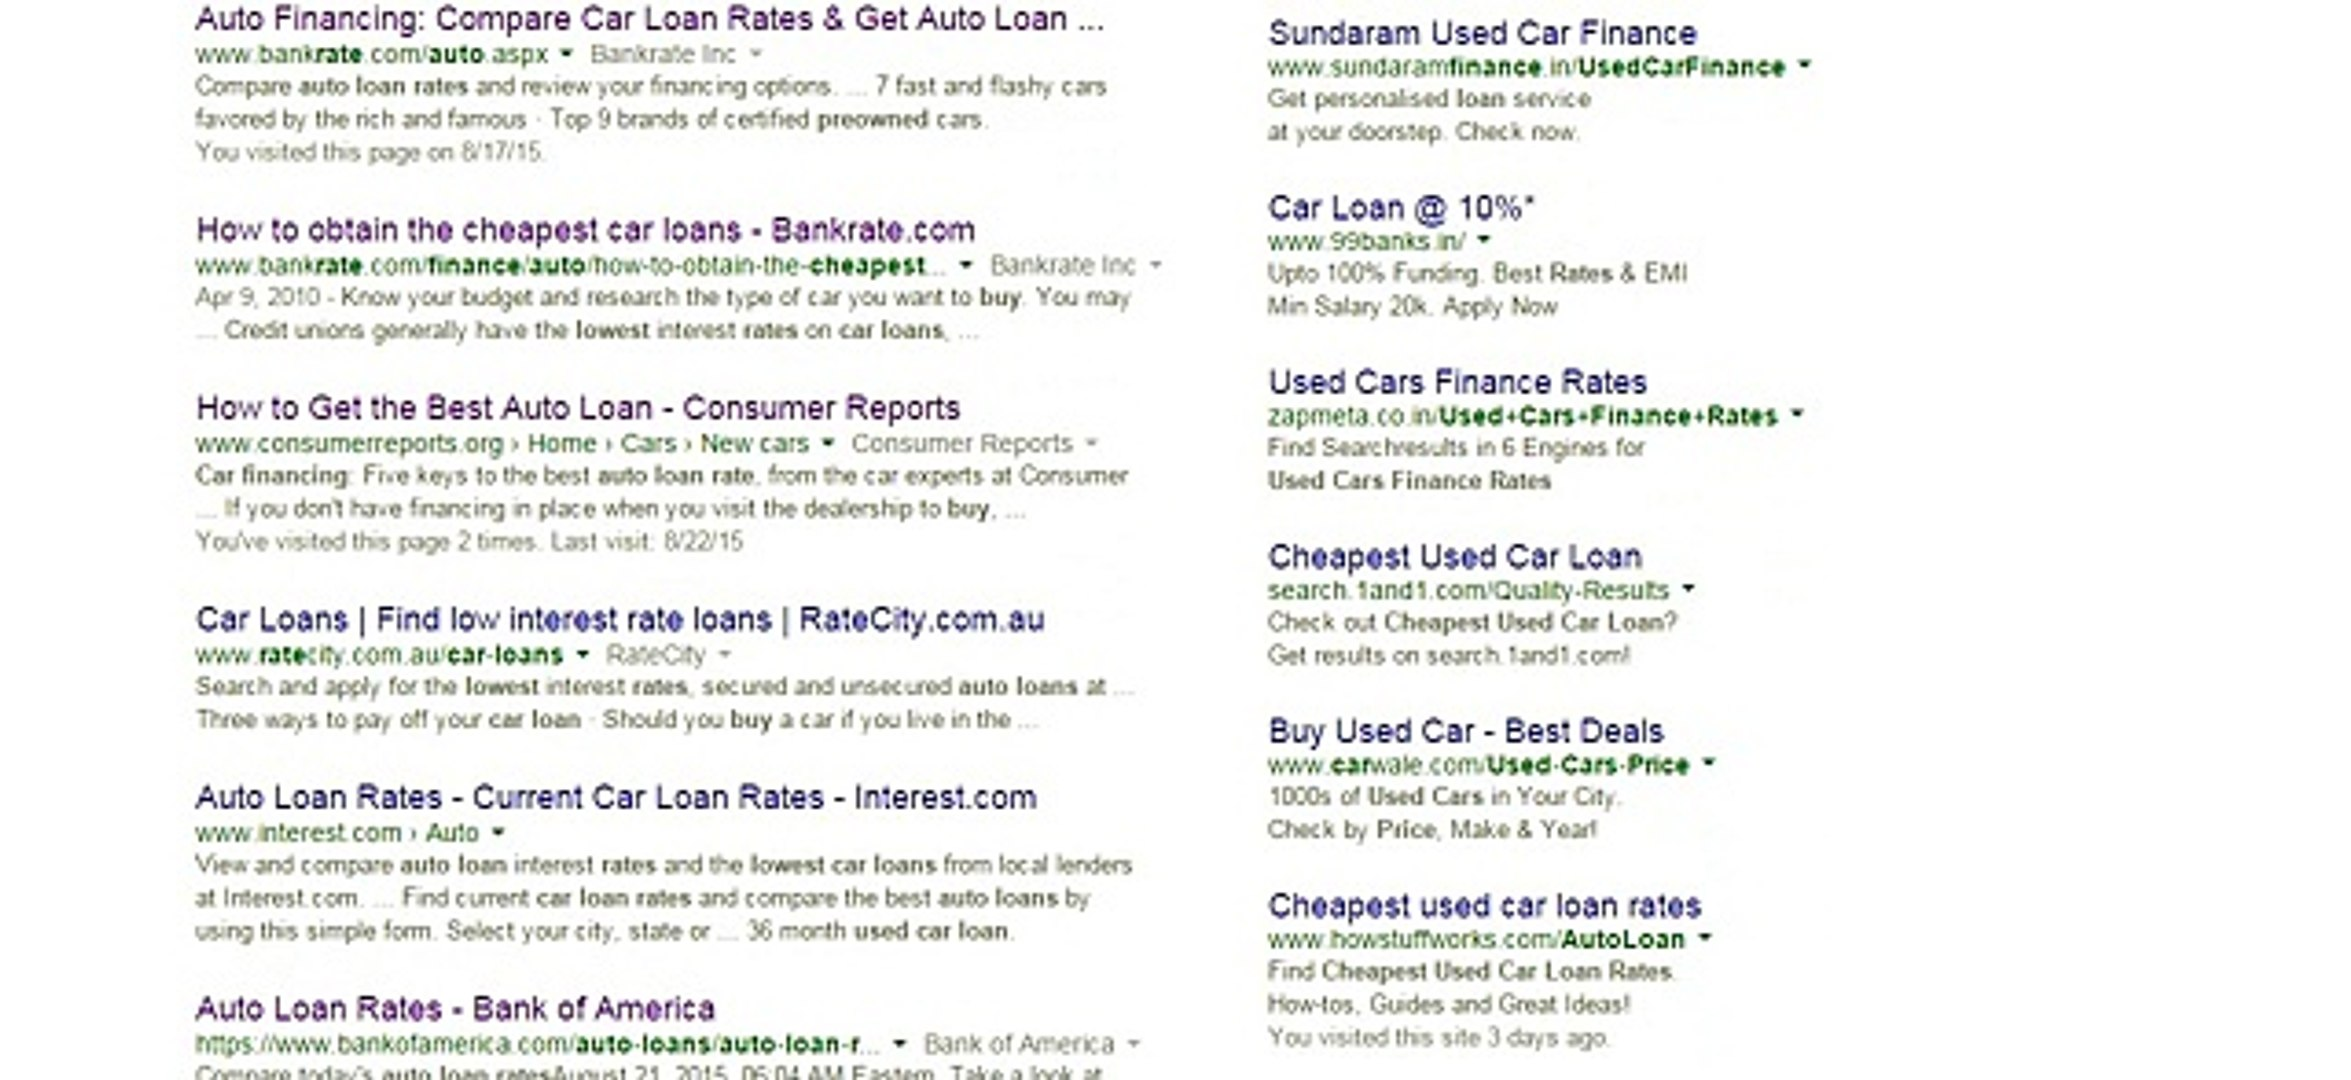 Best Used Car Loan Rates >> Cheapest Used Car Loan Rates Bank Of America Video